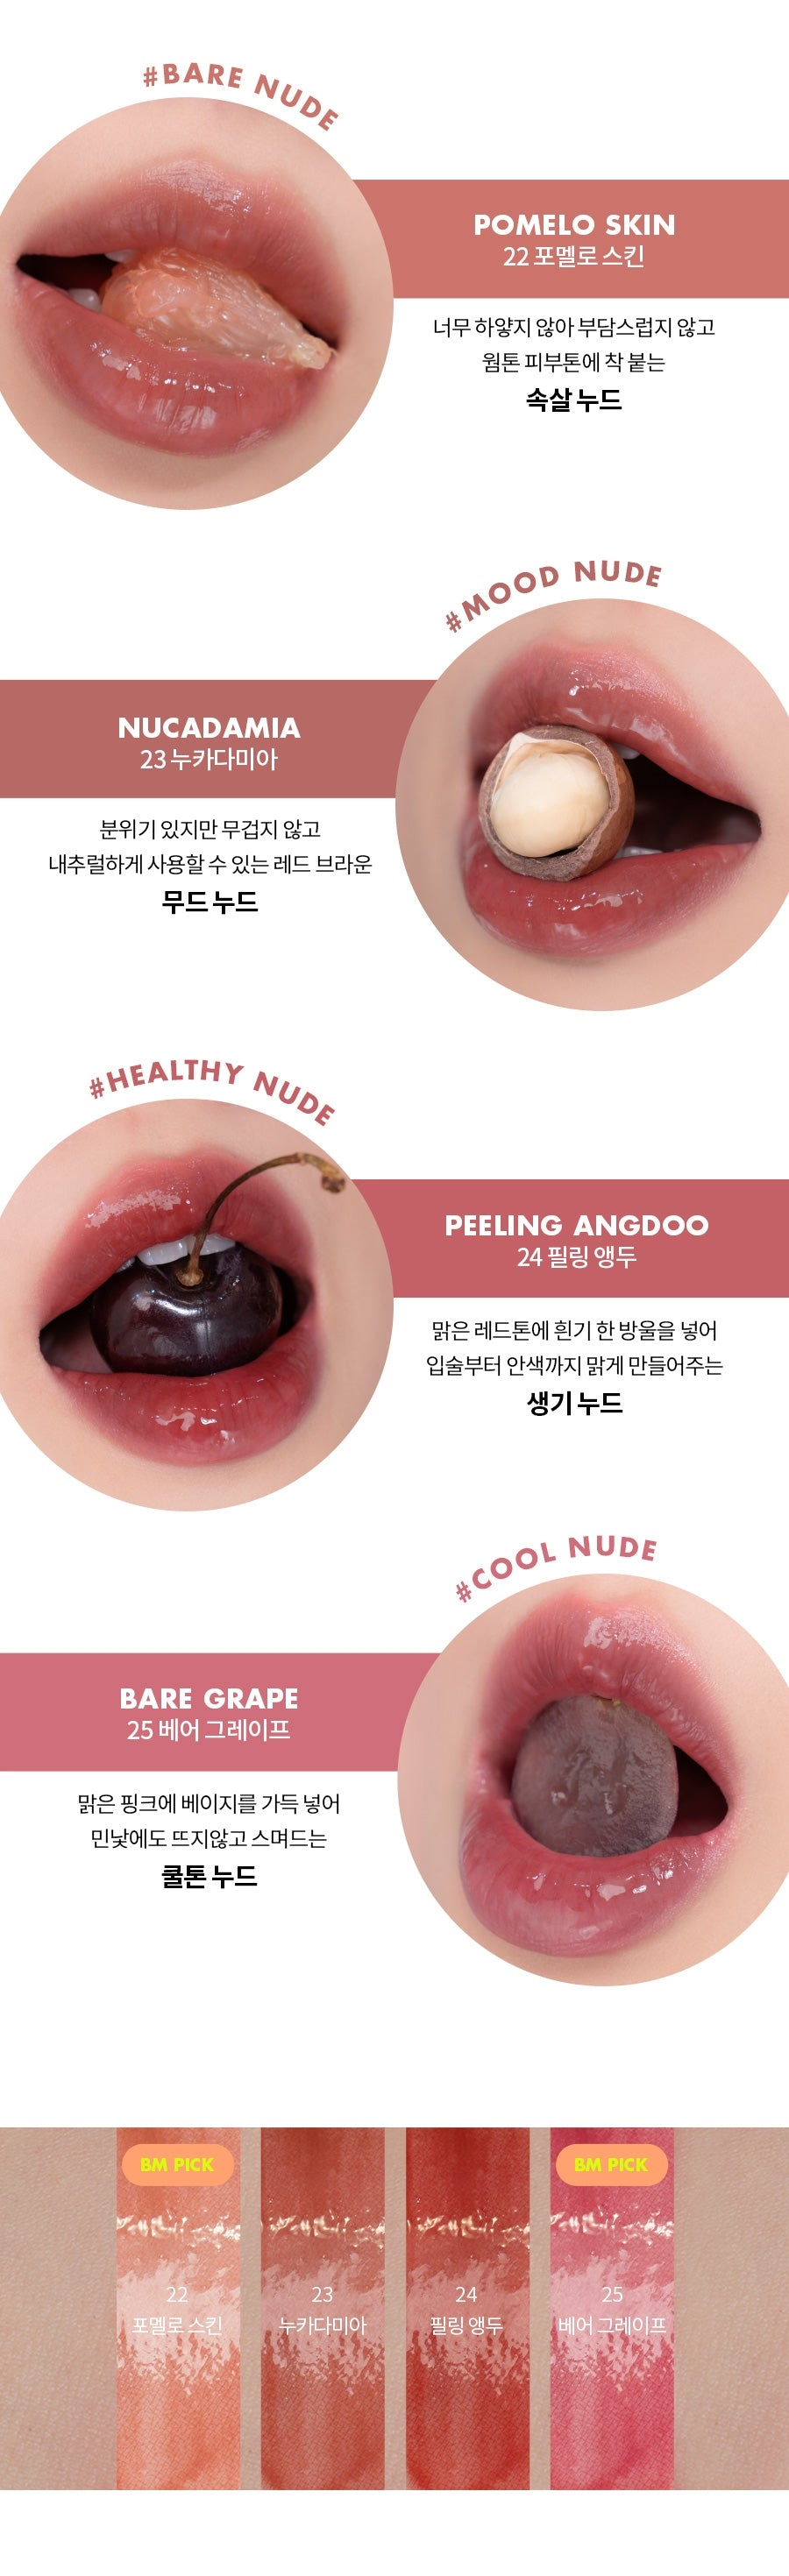 ROM&ND Juicy Lasting Tint Autumn Fruits